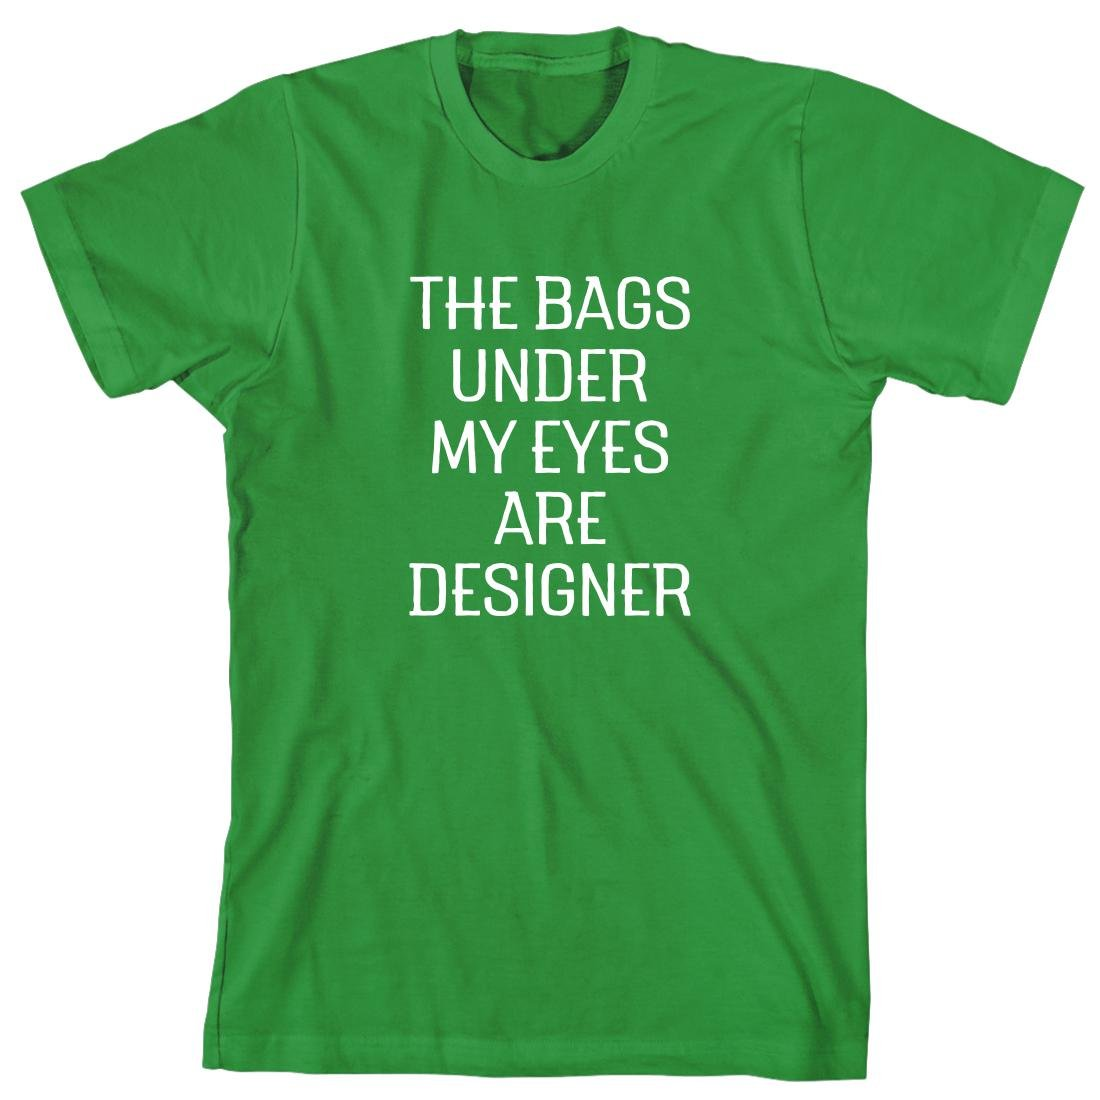 The Bags Under My Eyes Are Designer Shirt 3638